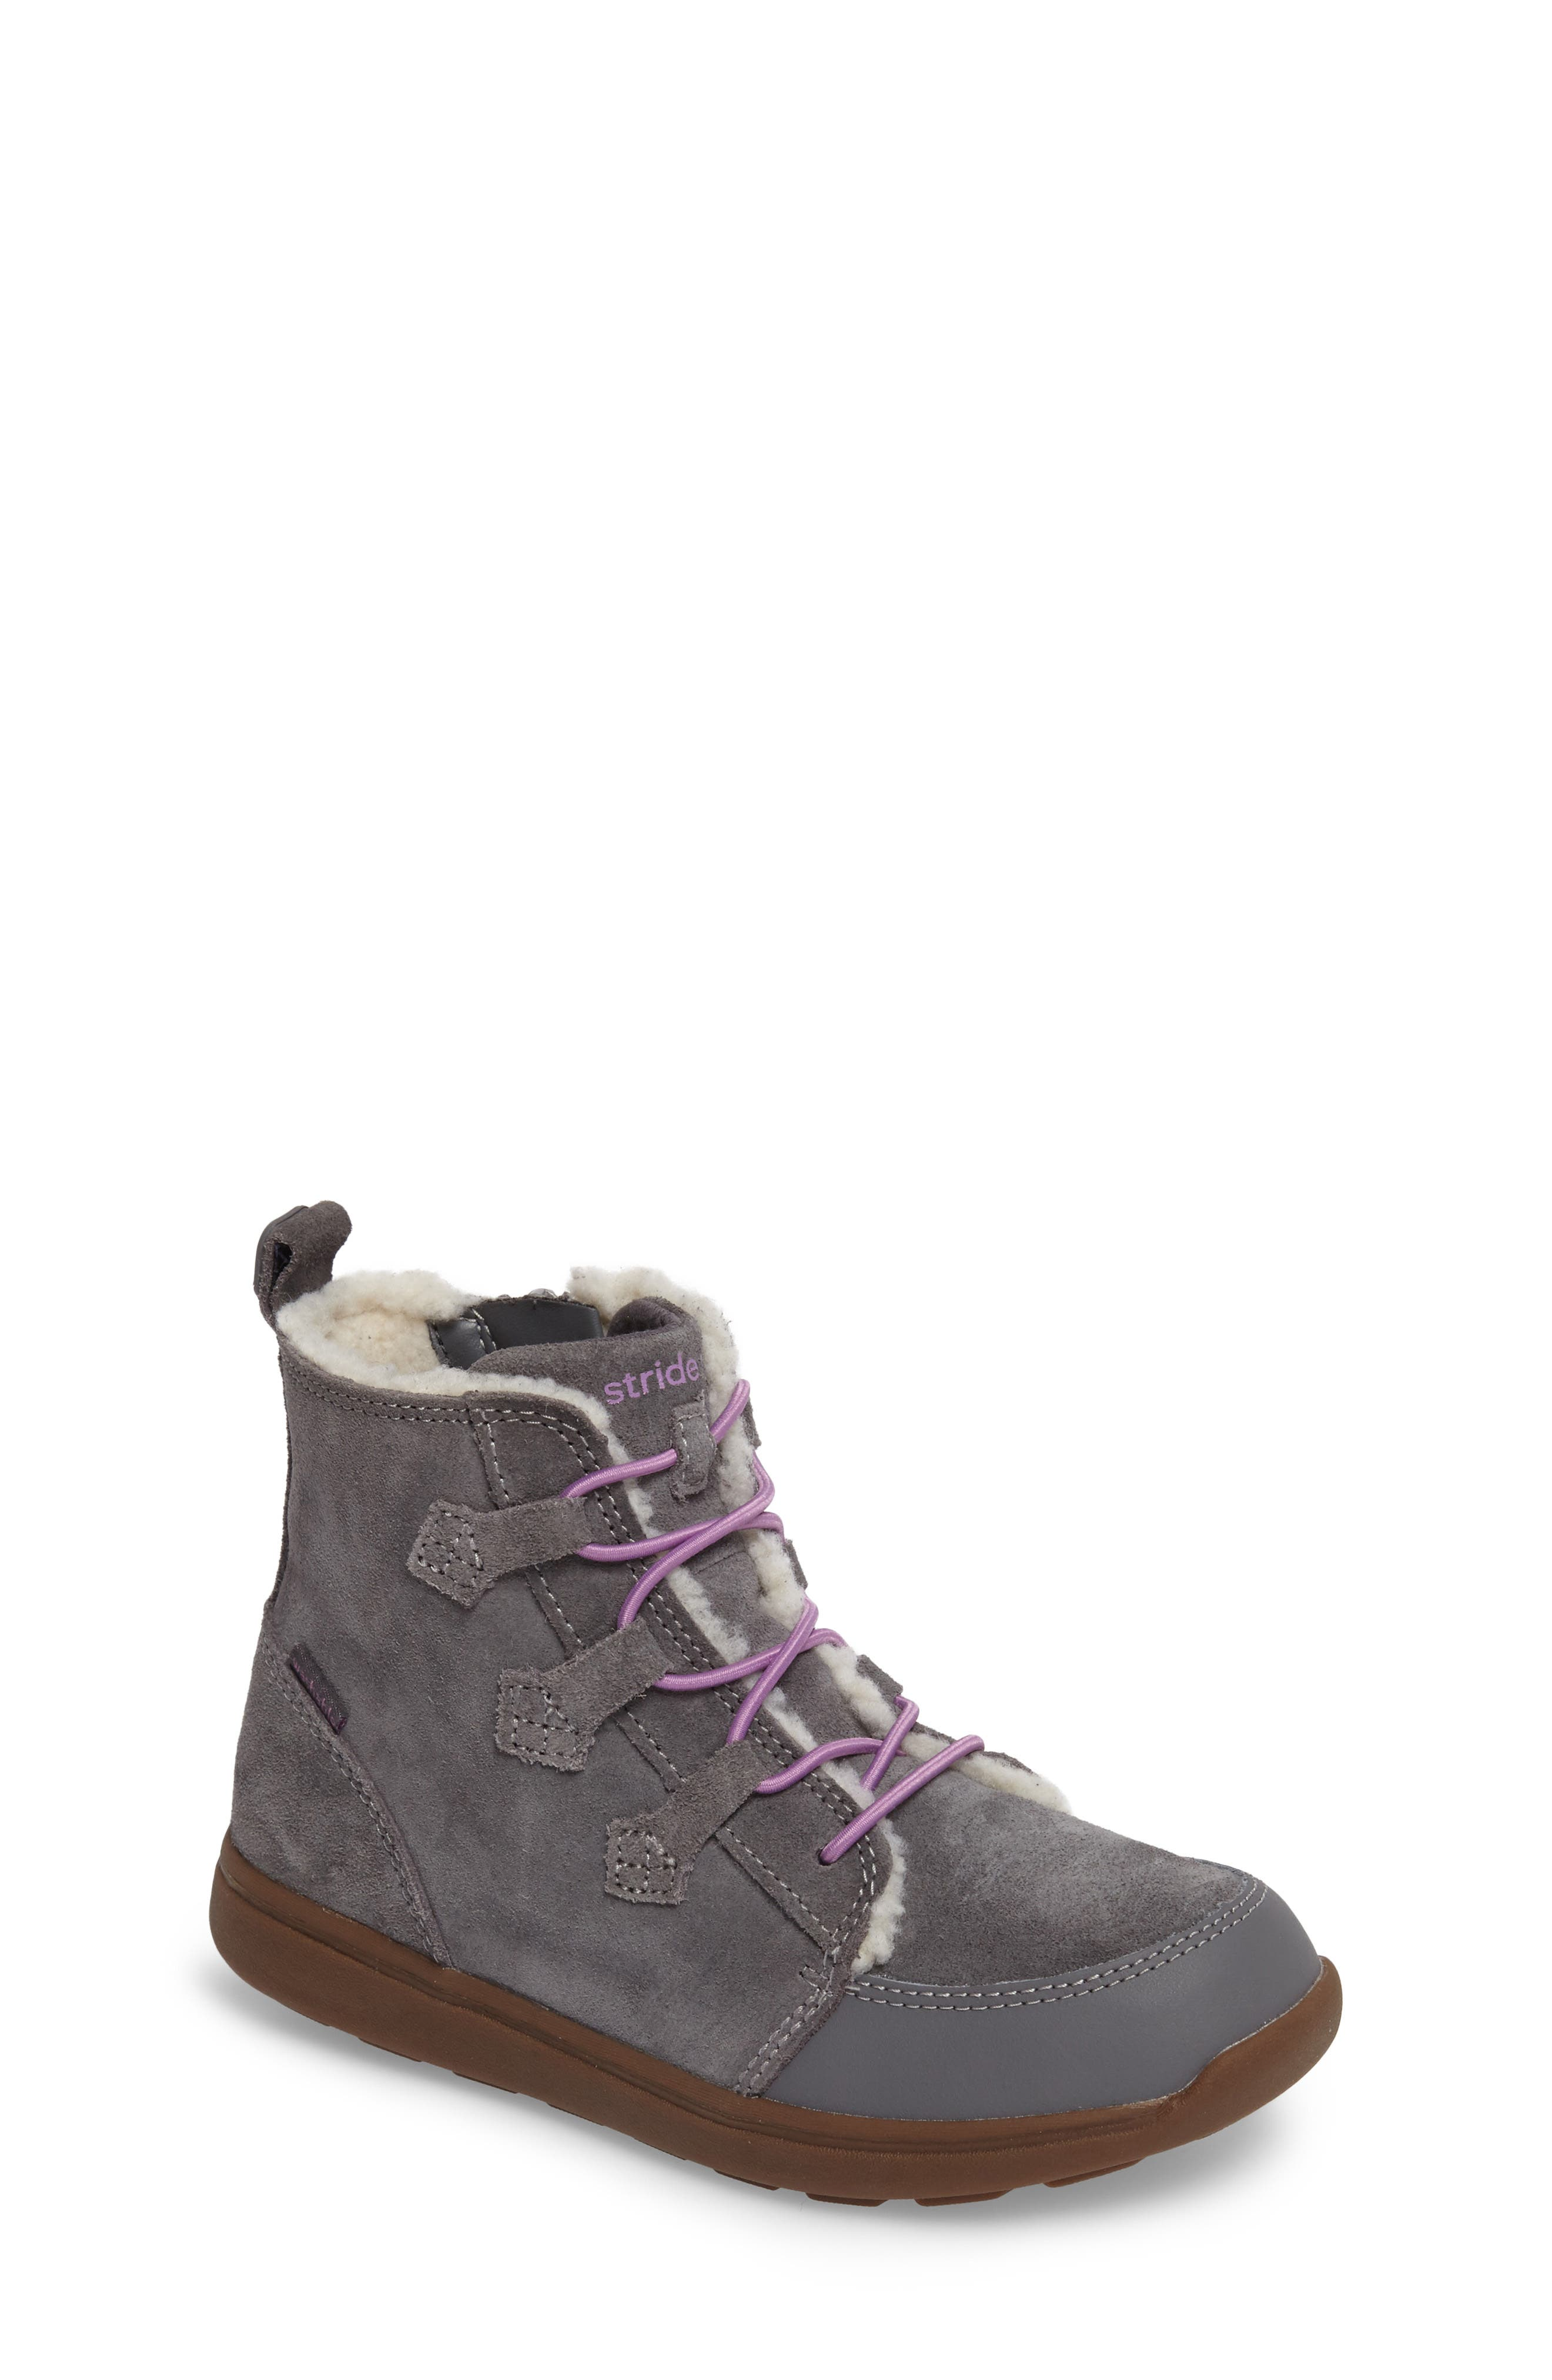 Main Image - Stride Rite Made2Play® Washable Faux Fur Heather Bootie (Toddler & Little Kid)